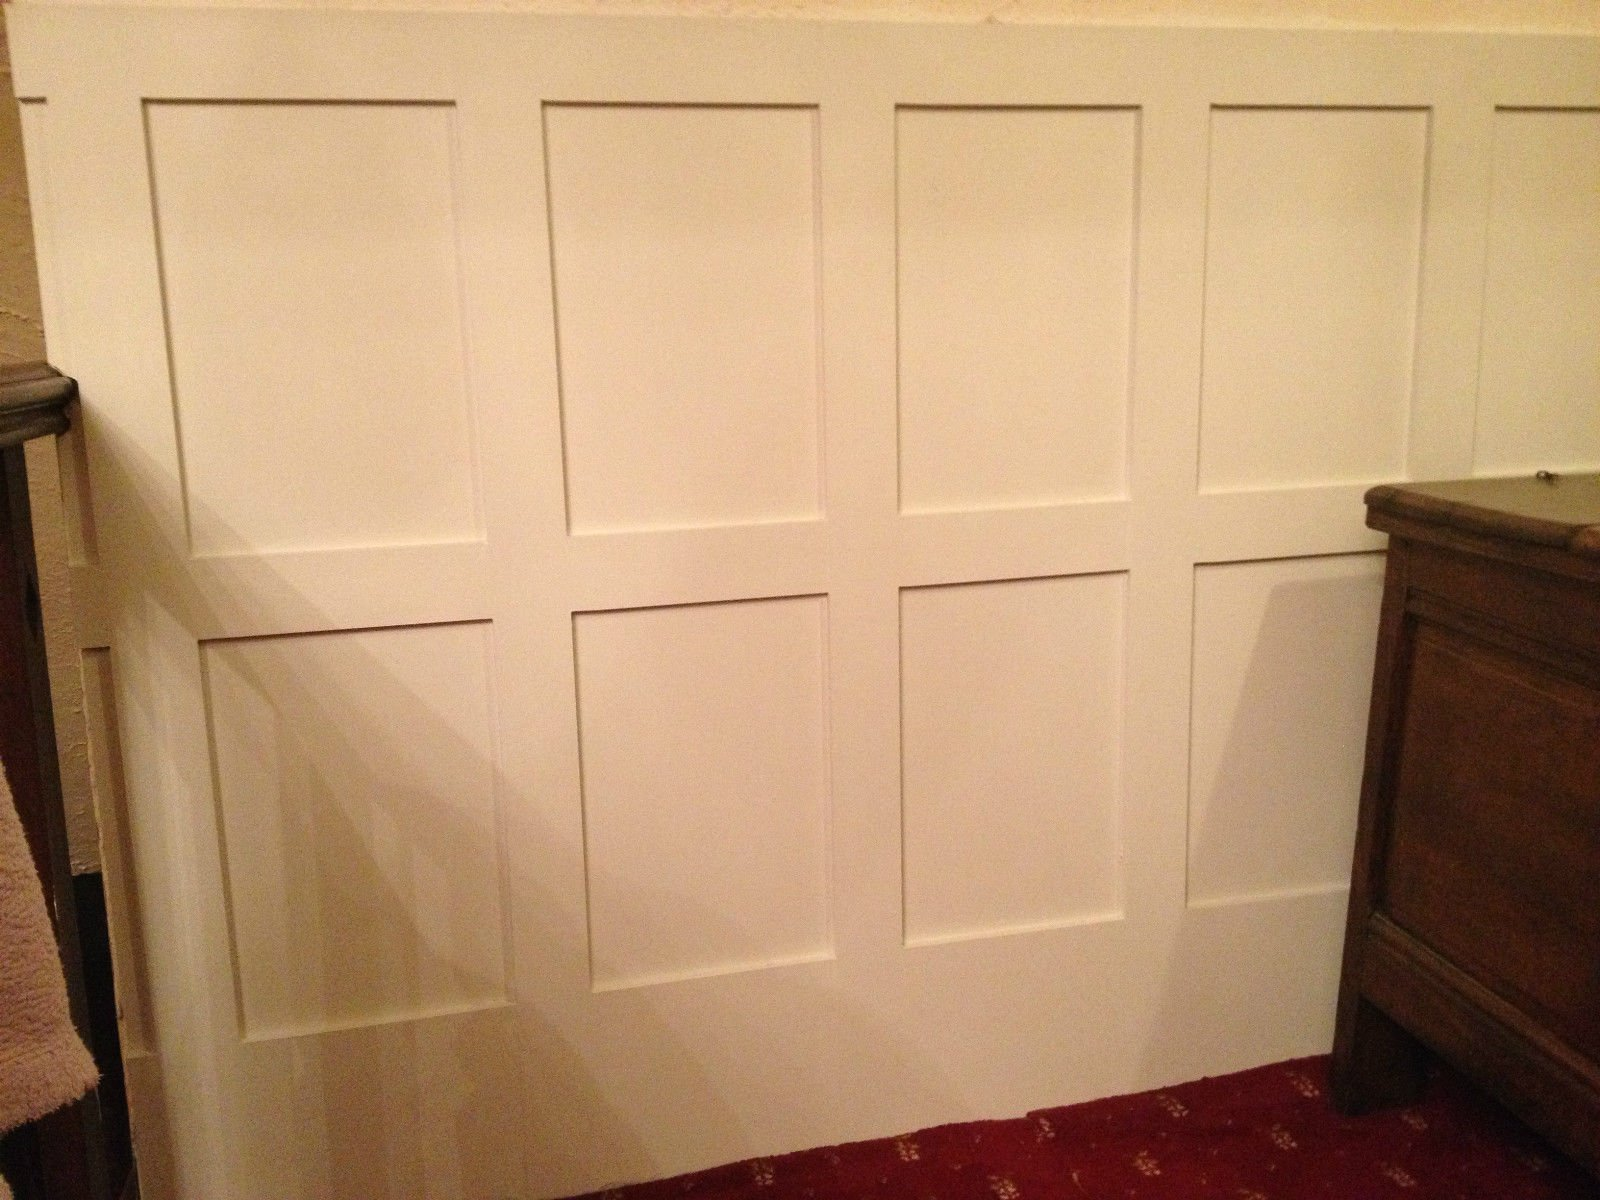 Old Farm Woodcraft Moisture Resistant Wall Panel Cladding Panelling 2.3m Elizabethan Georgian Edwardian and Shaker styles DIY Easy to Install yourself Custom orders taken